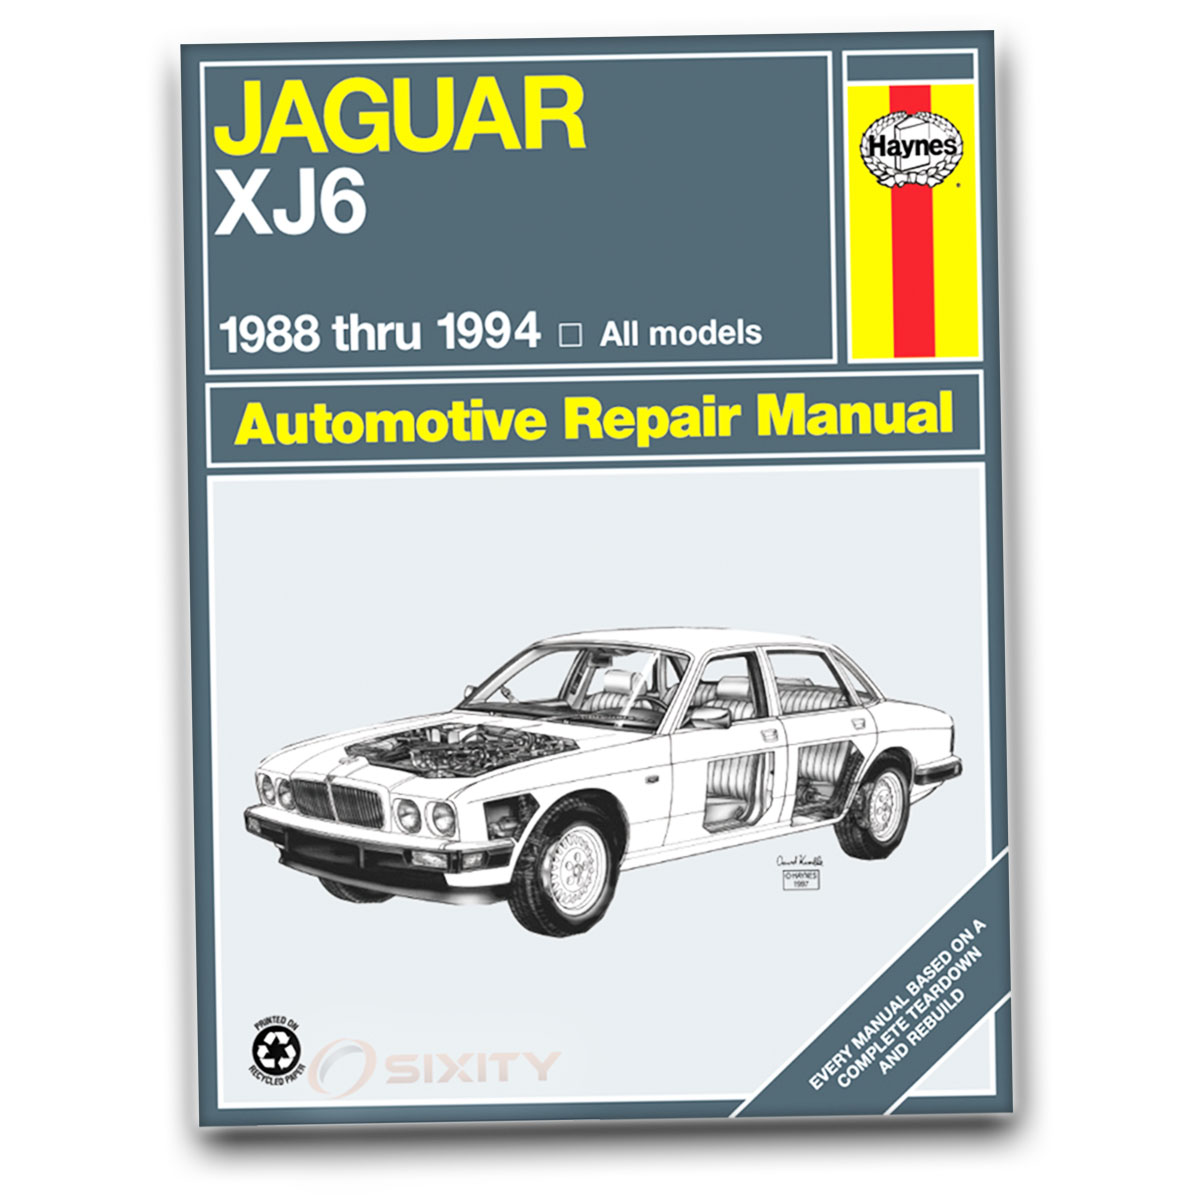 jaguar xj6 haynes repair manual sovereign base shop service garage rh ebay com 2004 Jaguar XJ6 1994 jaguar xj6 repair manual